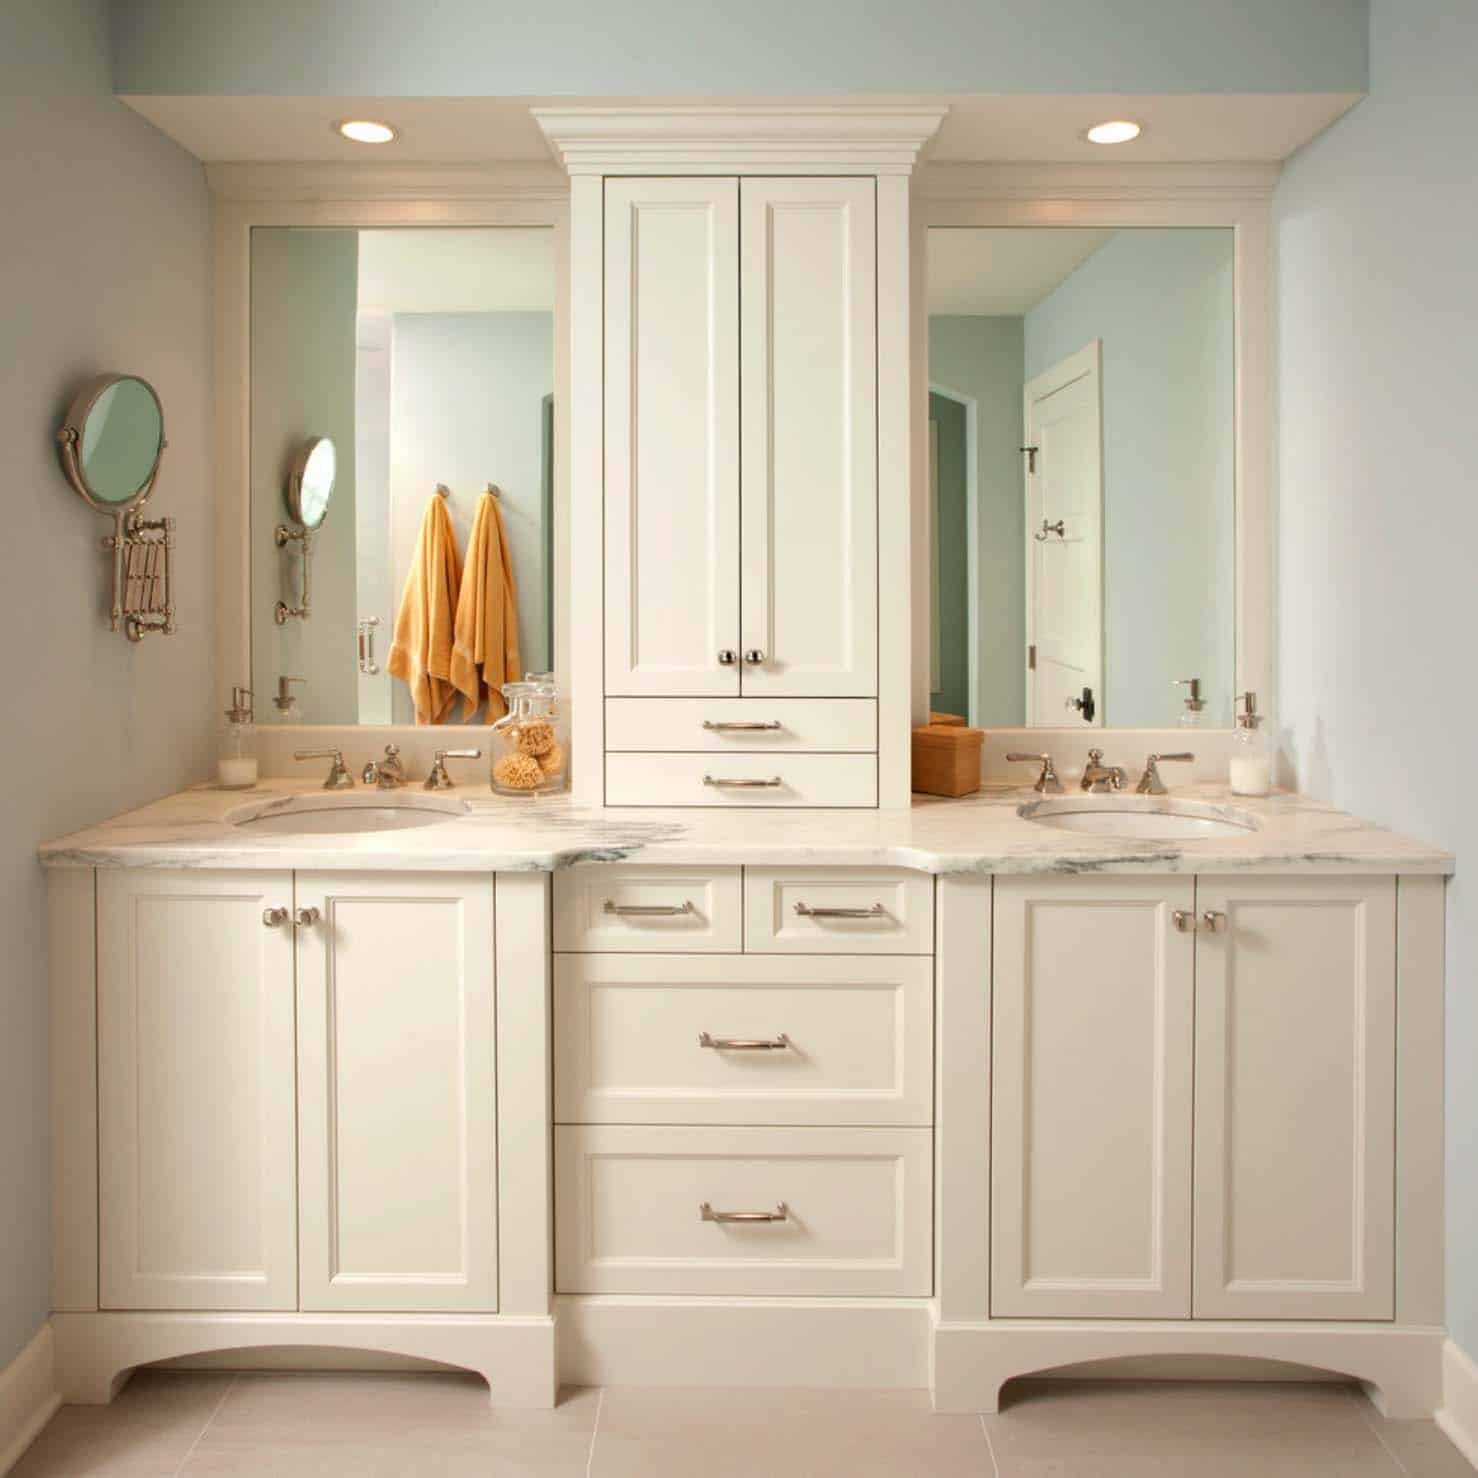 Traditional Bathroom Design Ideas-09-1 Kindesign